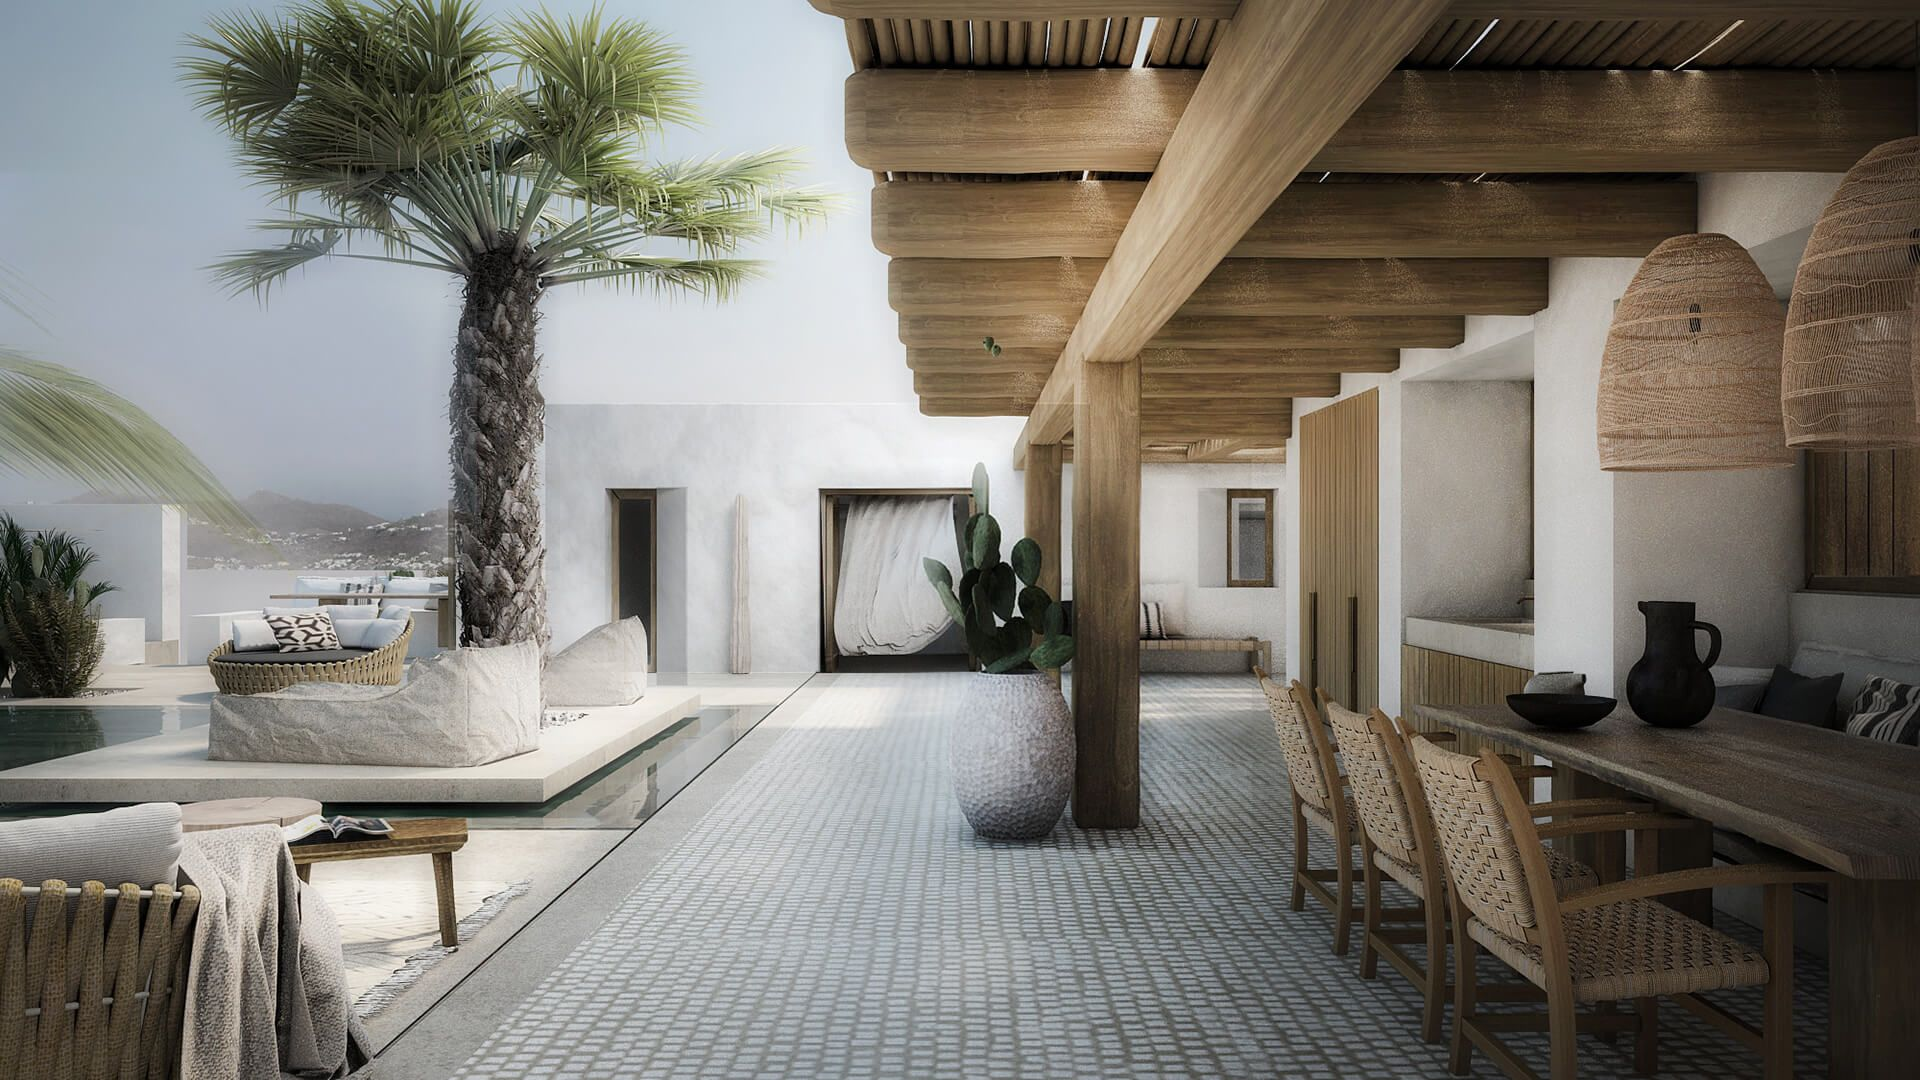 Meubles Makri Belgique Interior Design Of A Family House In Mykonos Neutrals House